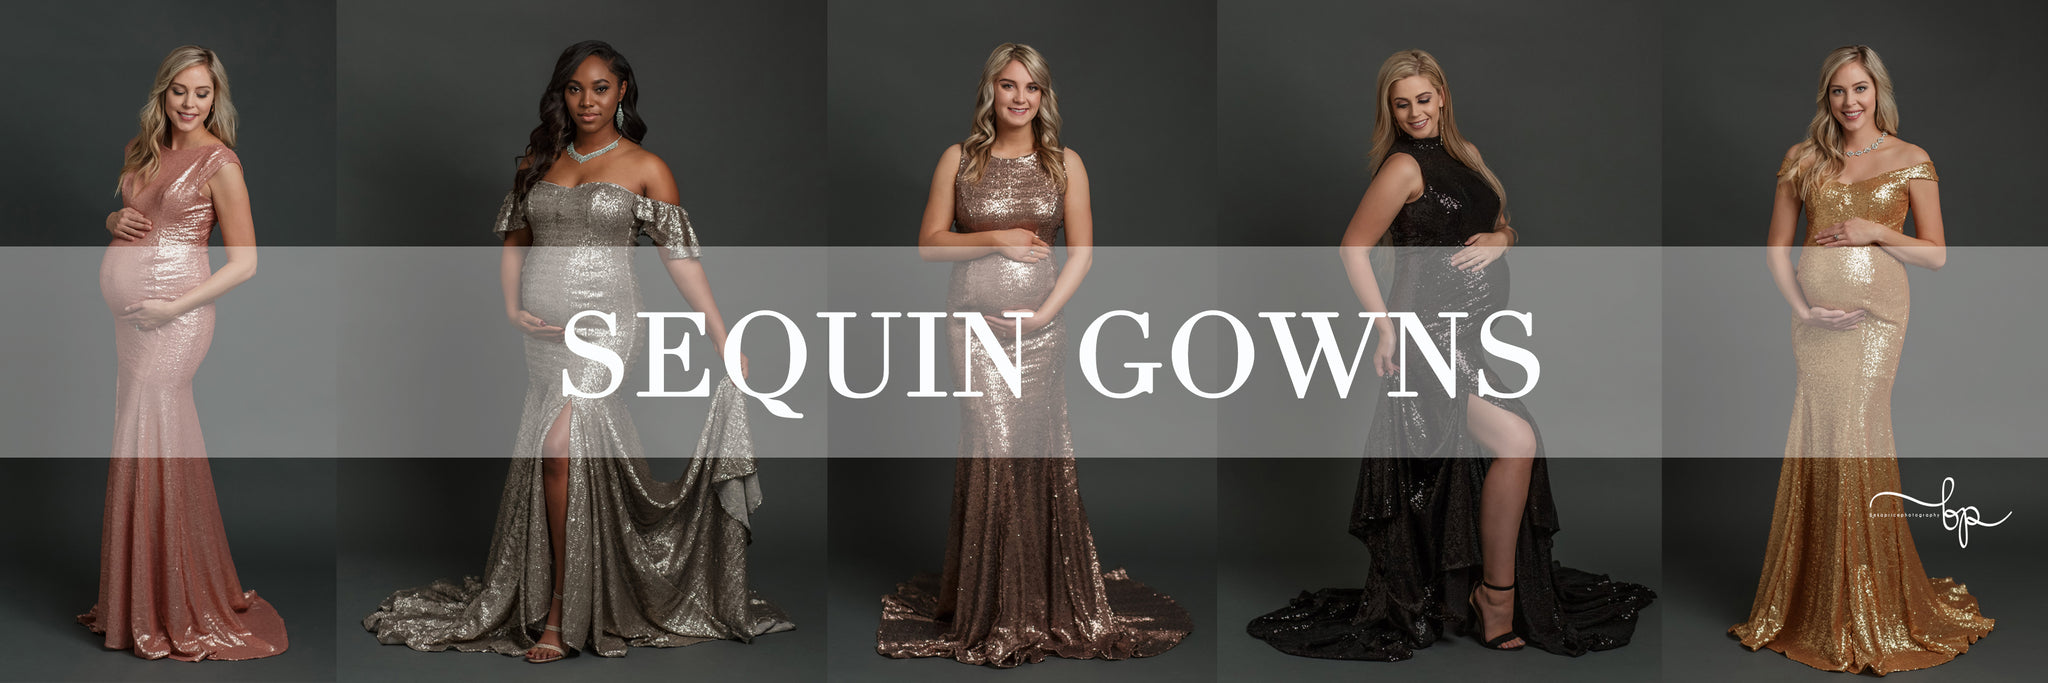 4 beautiful pregnant women wearing a variety of sequin maternity gowns by Sew Trendy with a grey backdrop.